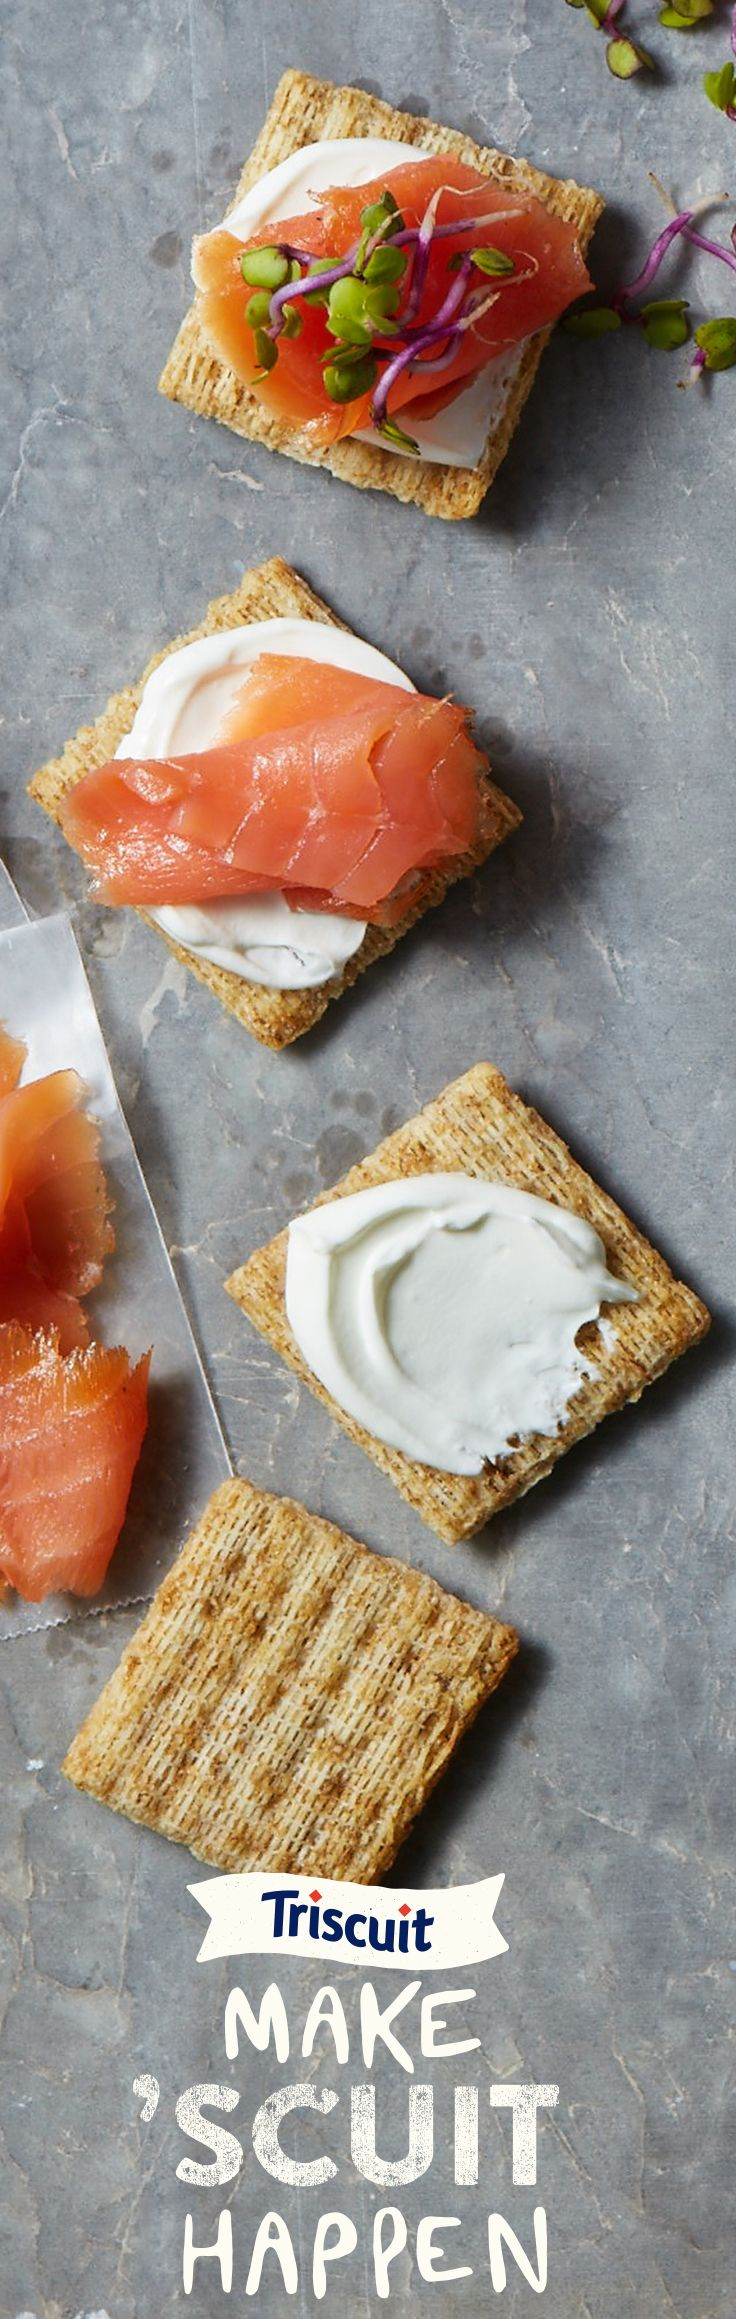 Snack at 100% without giving 100%. All it takes is sour cream, smoked salmon and sprouts on a TRISCUIT cracker.